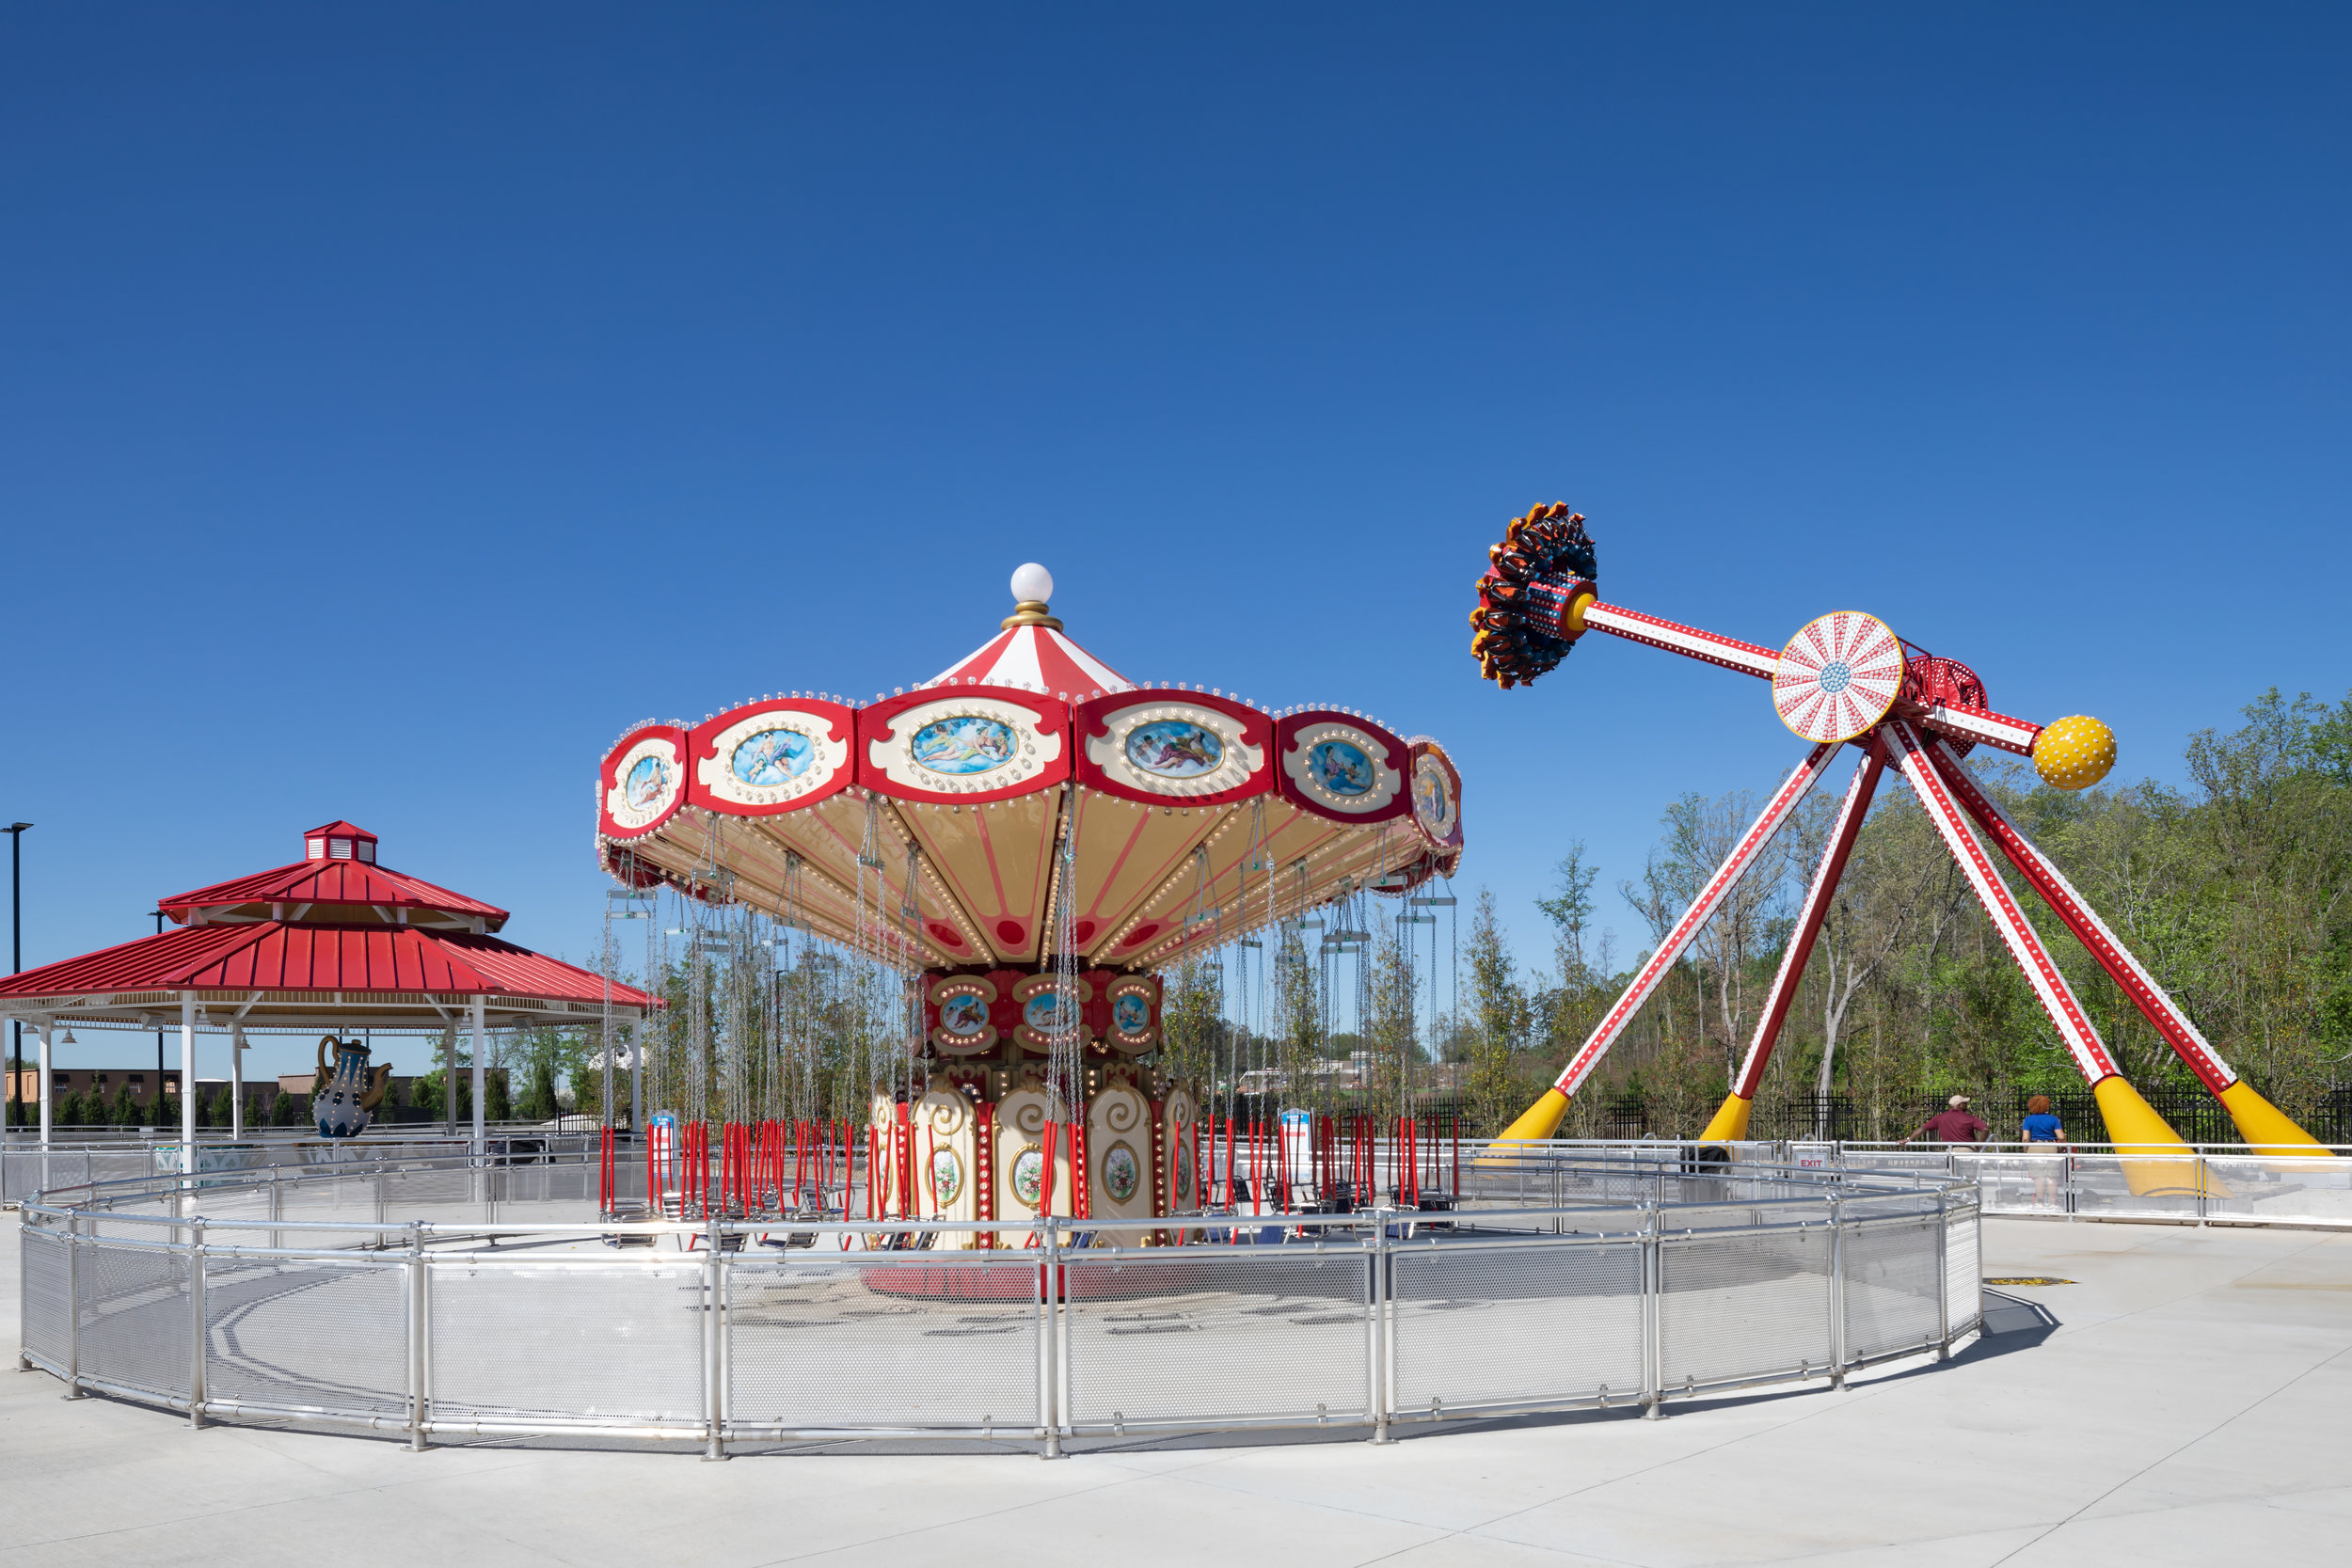 ADW-Entertainment-Frankie's-Fun-Park-Huntersville-NC-Exterior-Swings.jpg